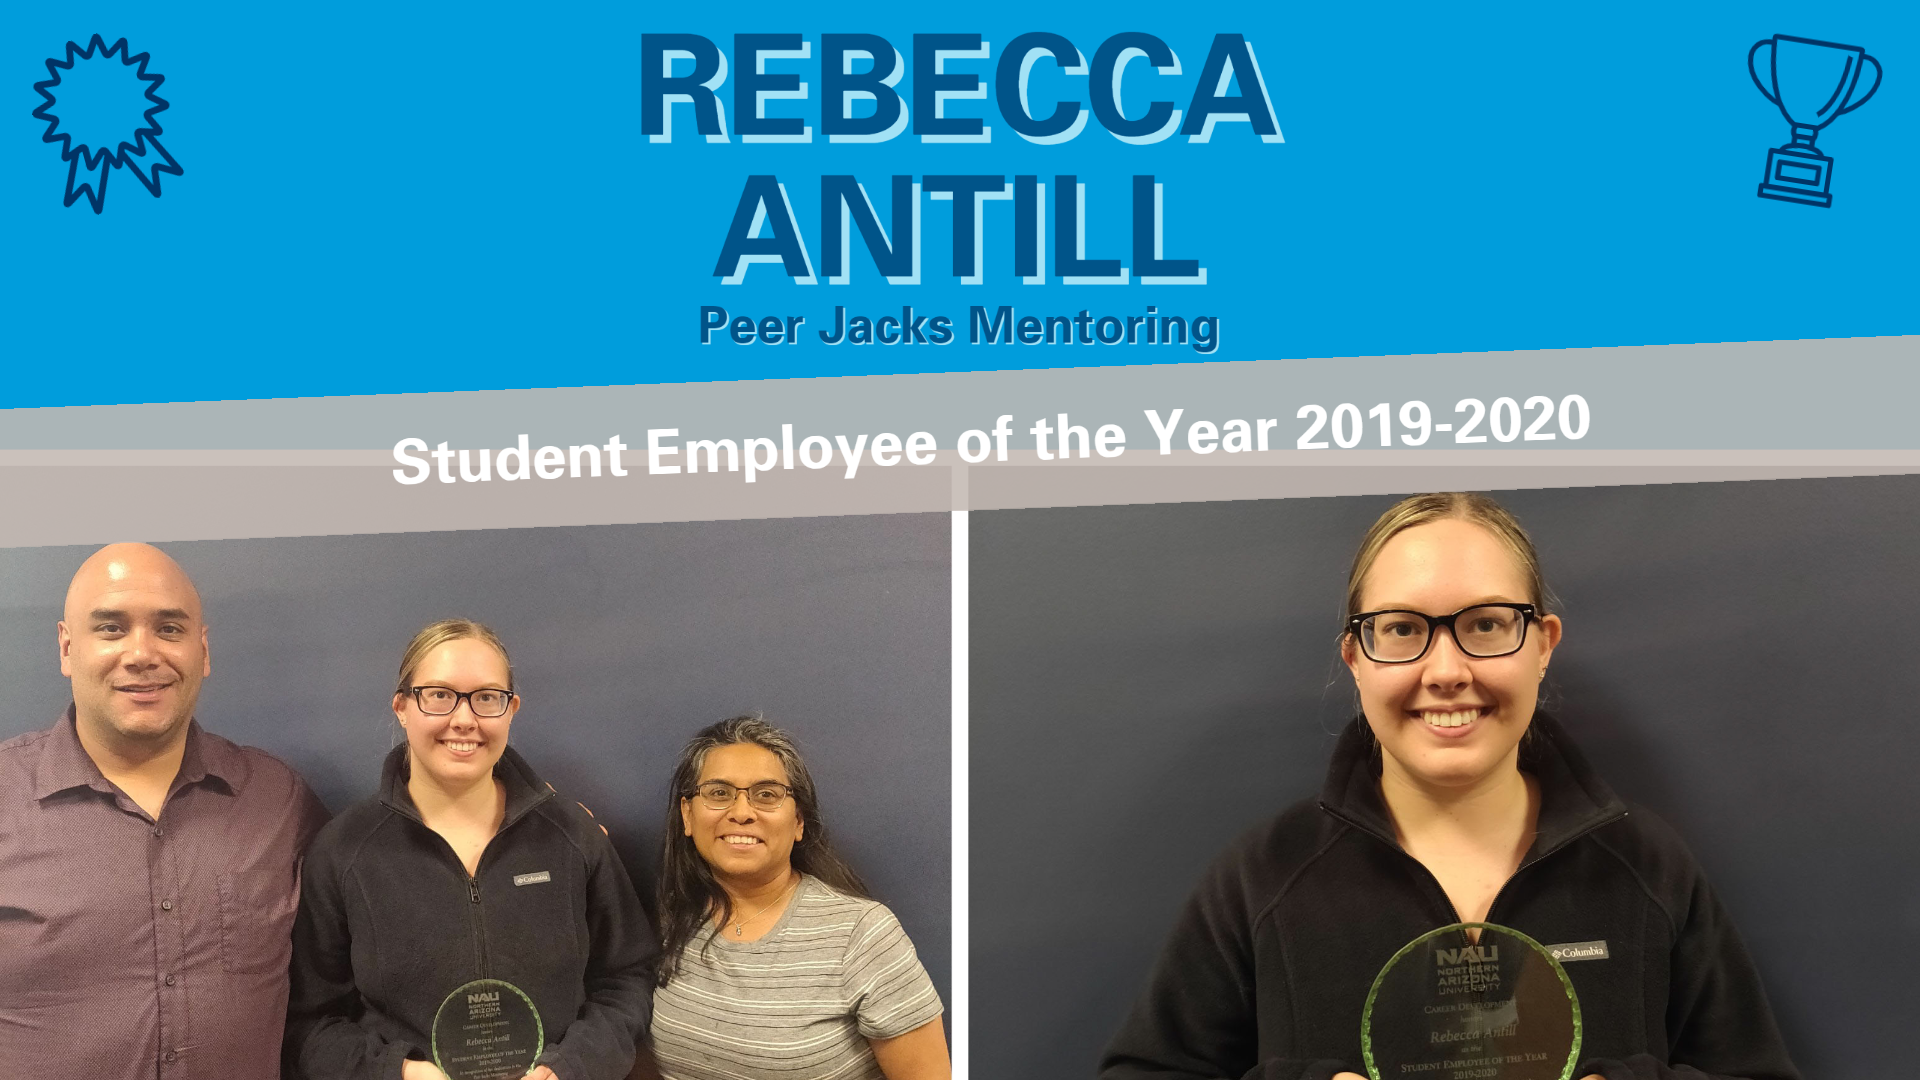 Rebecca Antill, Peer Jacks Mentoring: Student Employee of the Year (2019-2020)